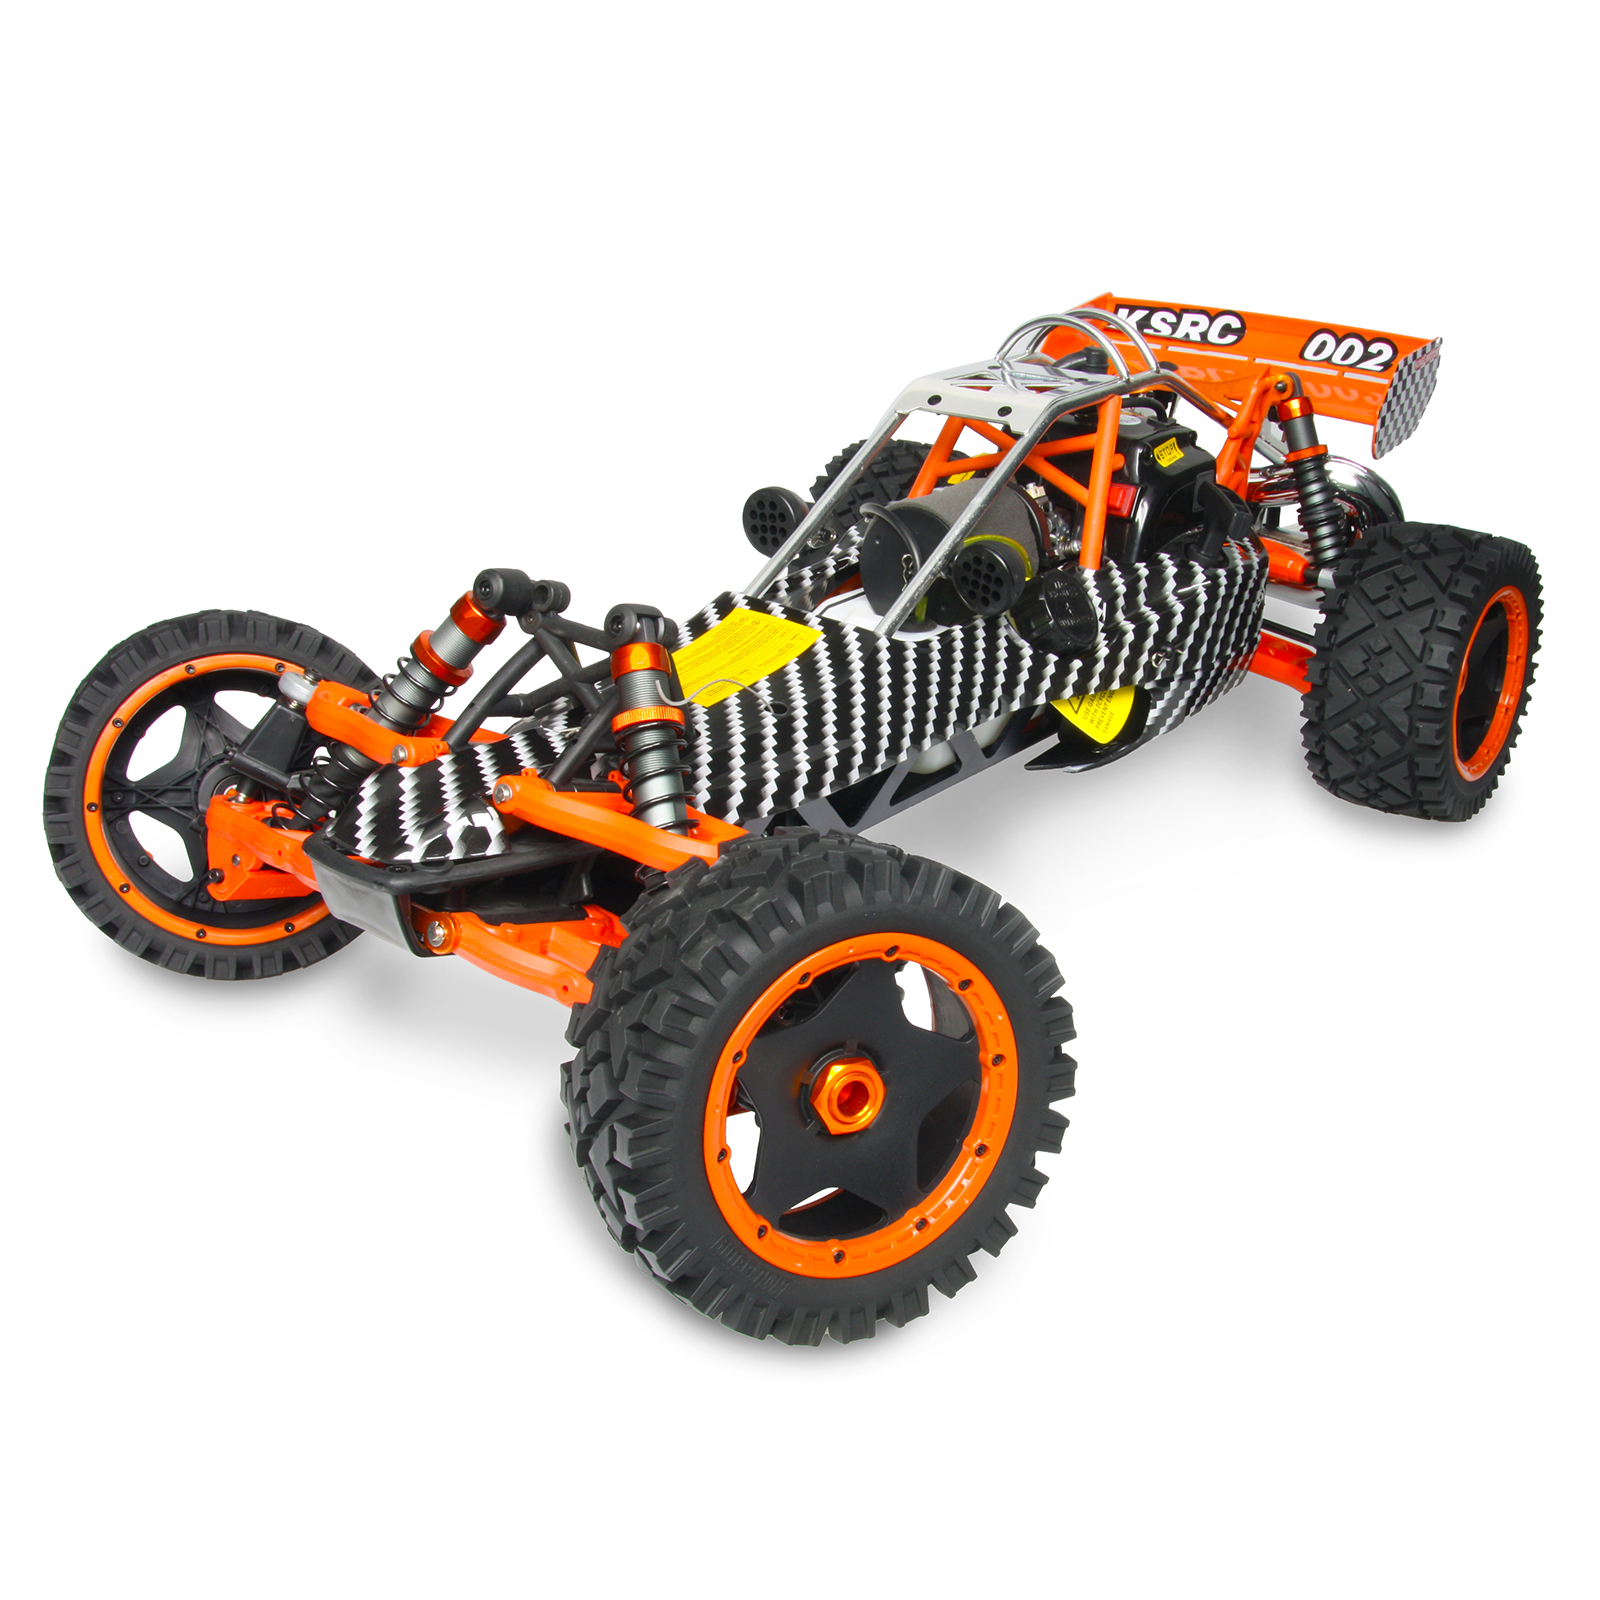 King Motor Baja Ksrc002 Carbon Hpi Style Rc Buggy At Hobby